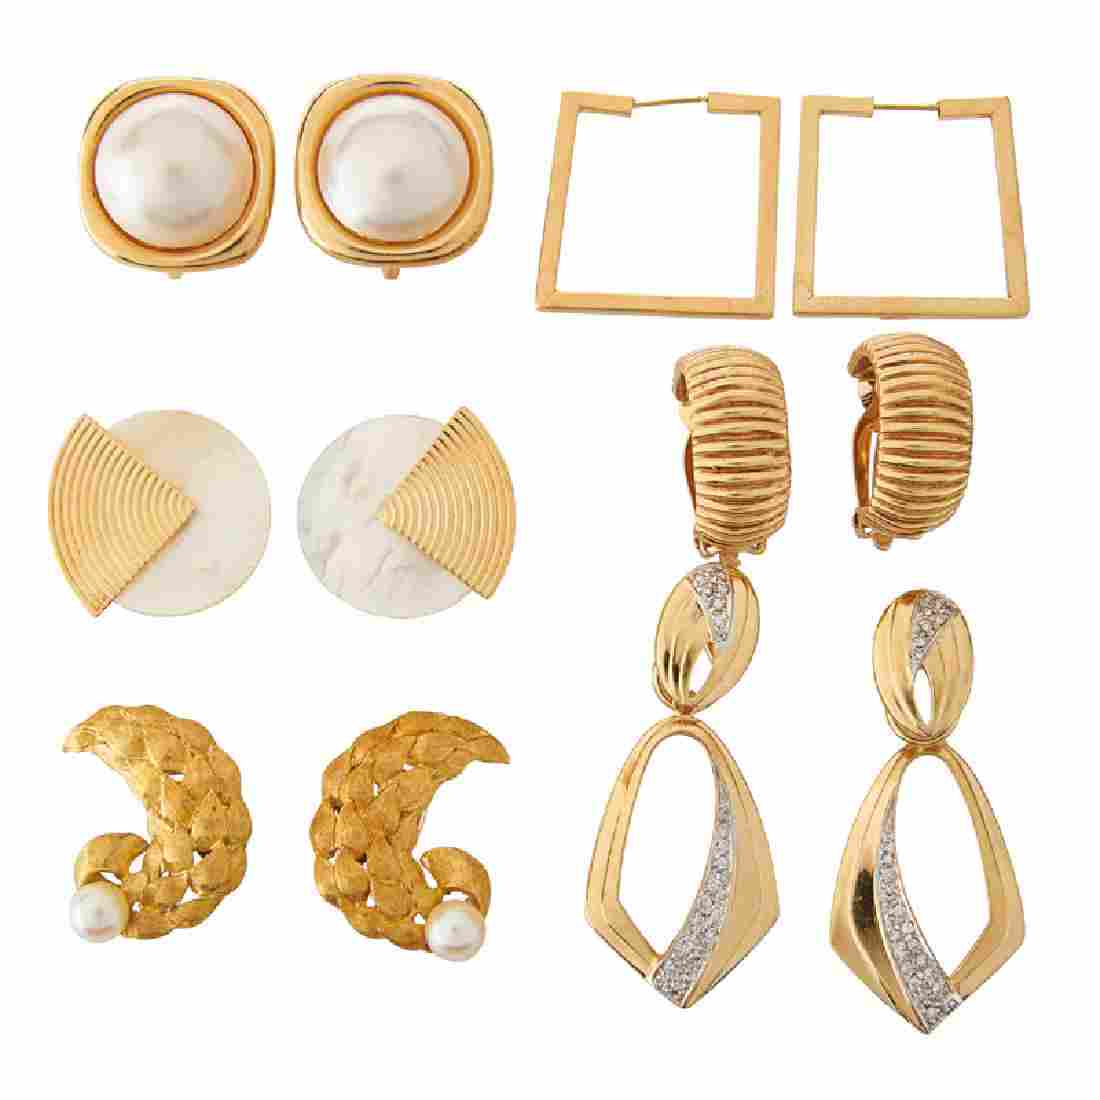 GROUP OF YELLOW GOLD EARRINGS, INCL. DIAMONDS & PEARLS